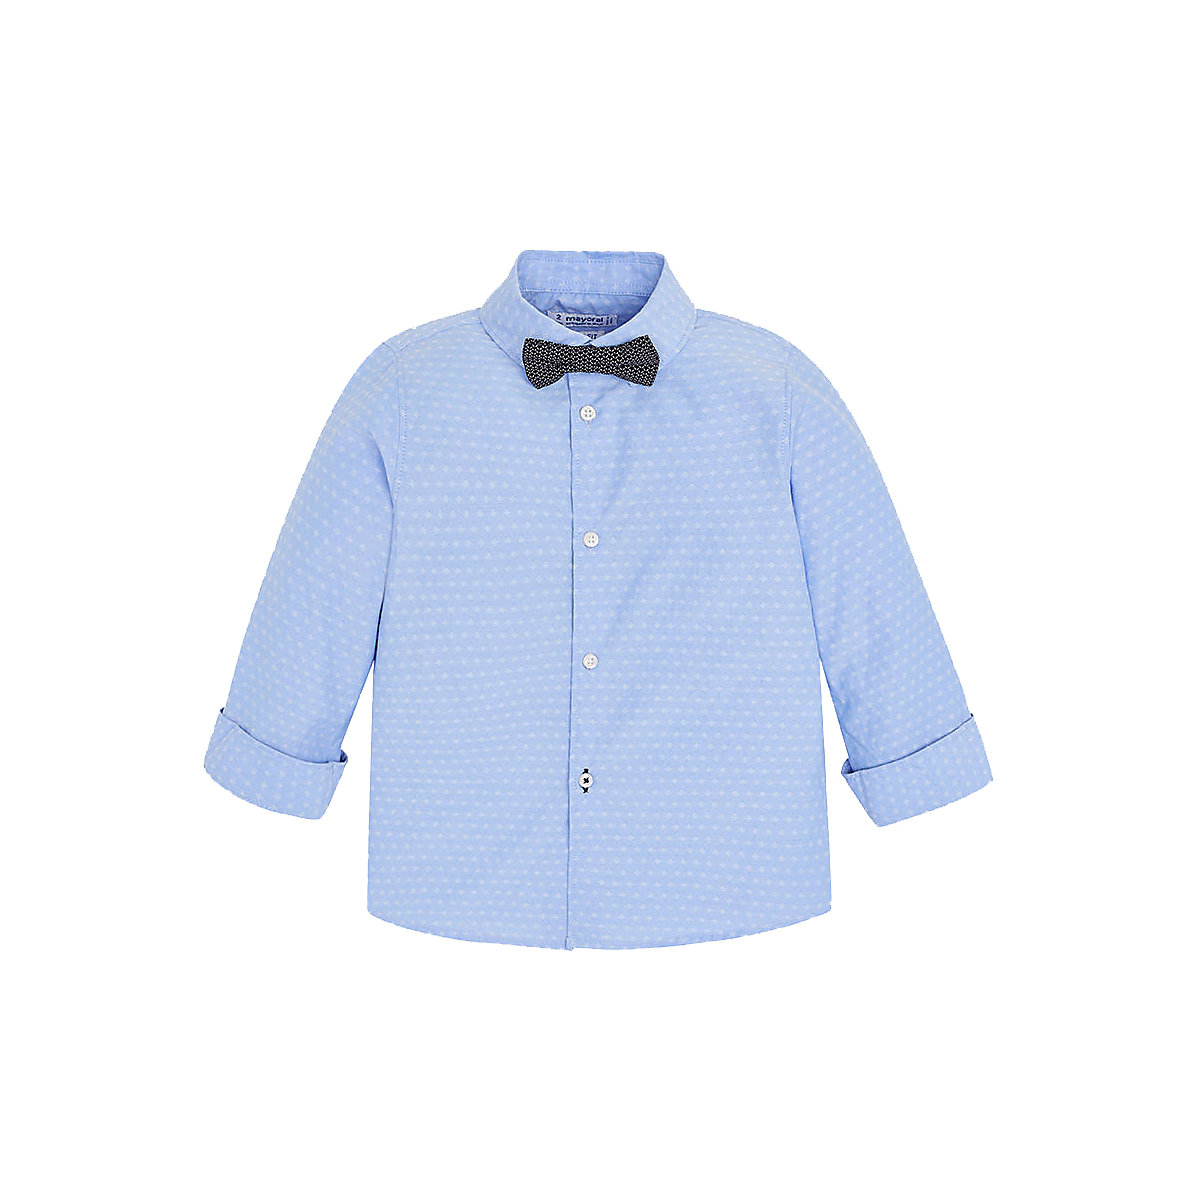 Blouses & Shirts MAYORAL 10690354 Children s Clothing shirt with long sleeve for a boy natural materials stylish slash neck long sleeve gray backless women s t shirt